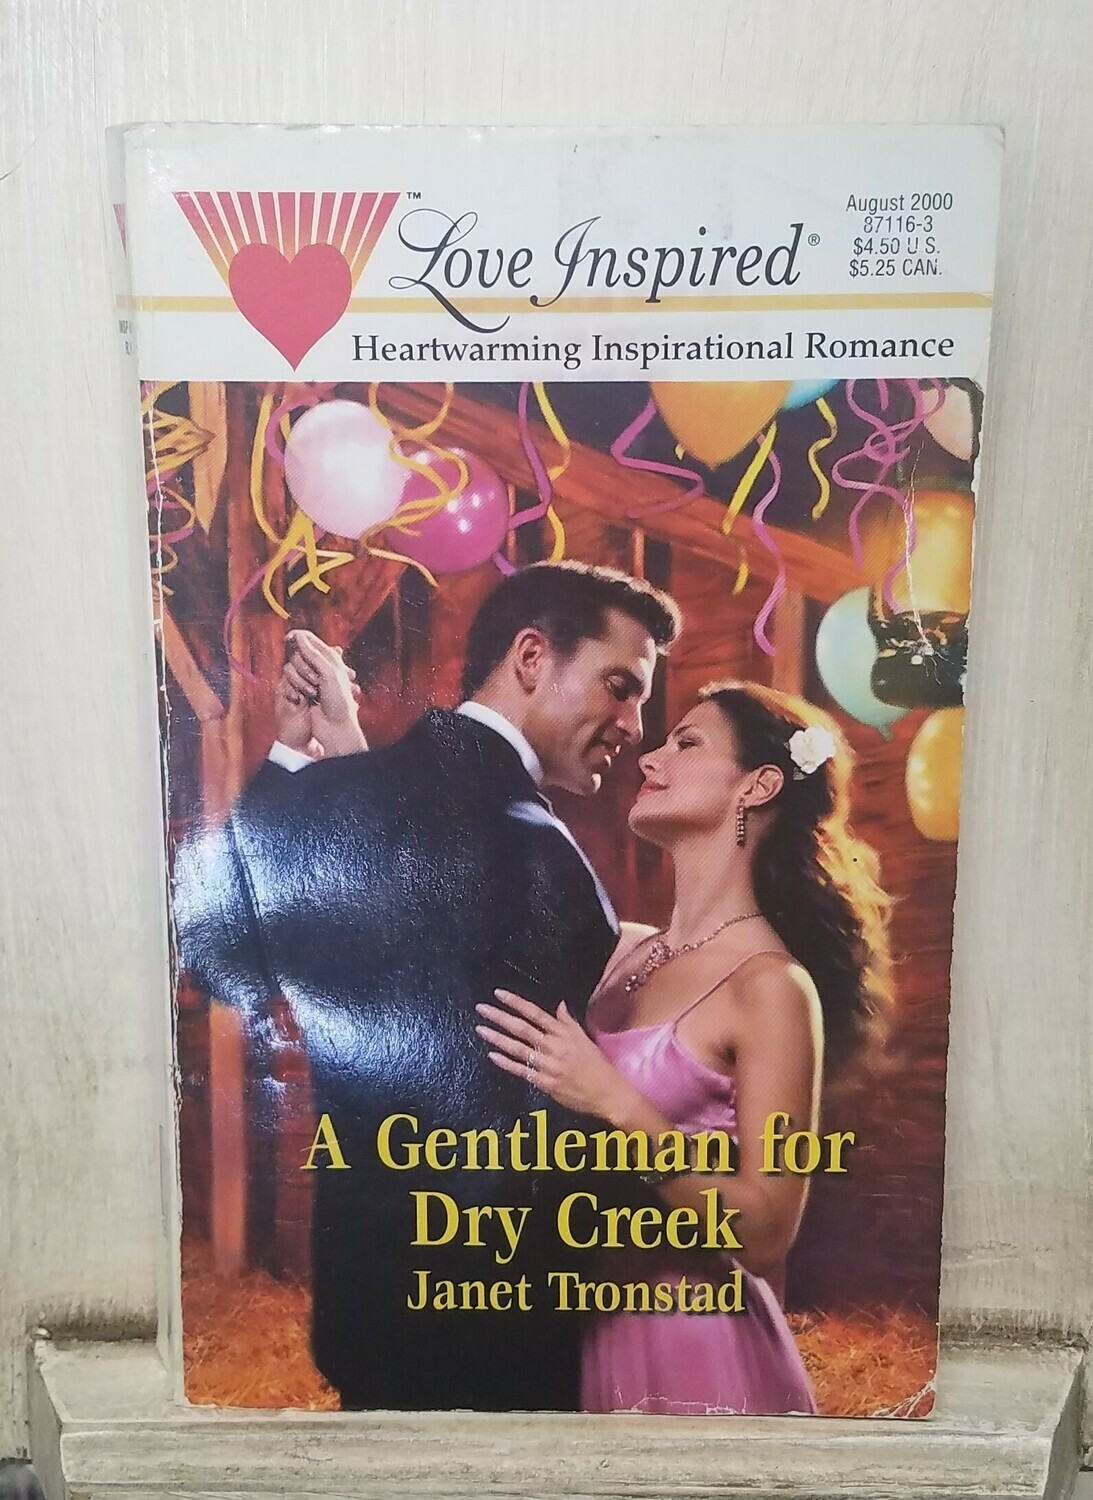 A Gentleman for Dry Creek by Janet Tronstad